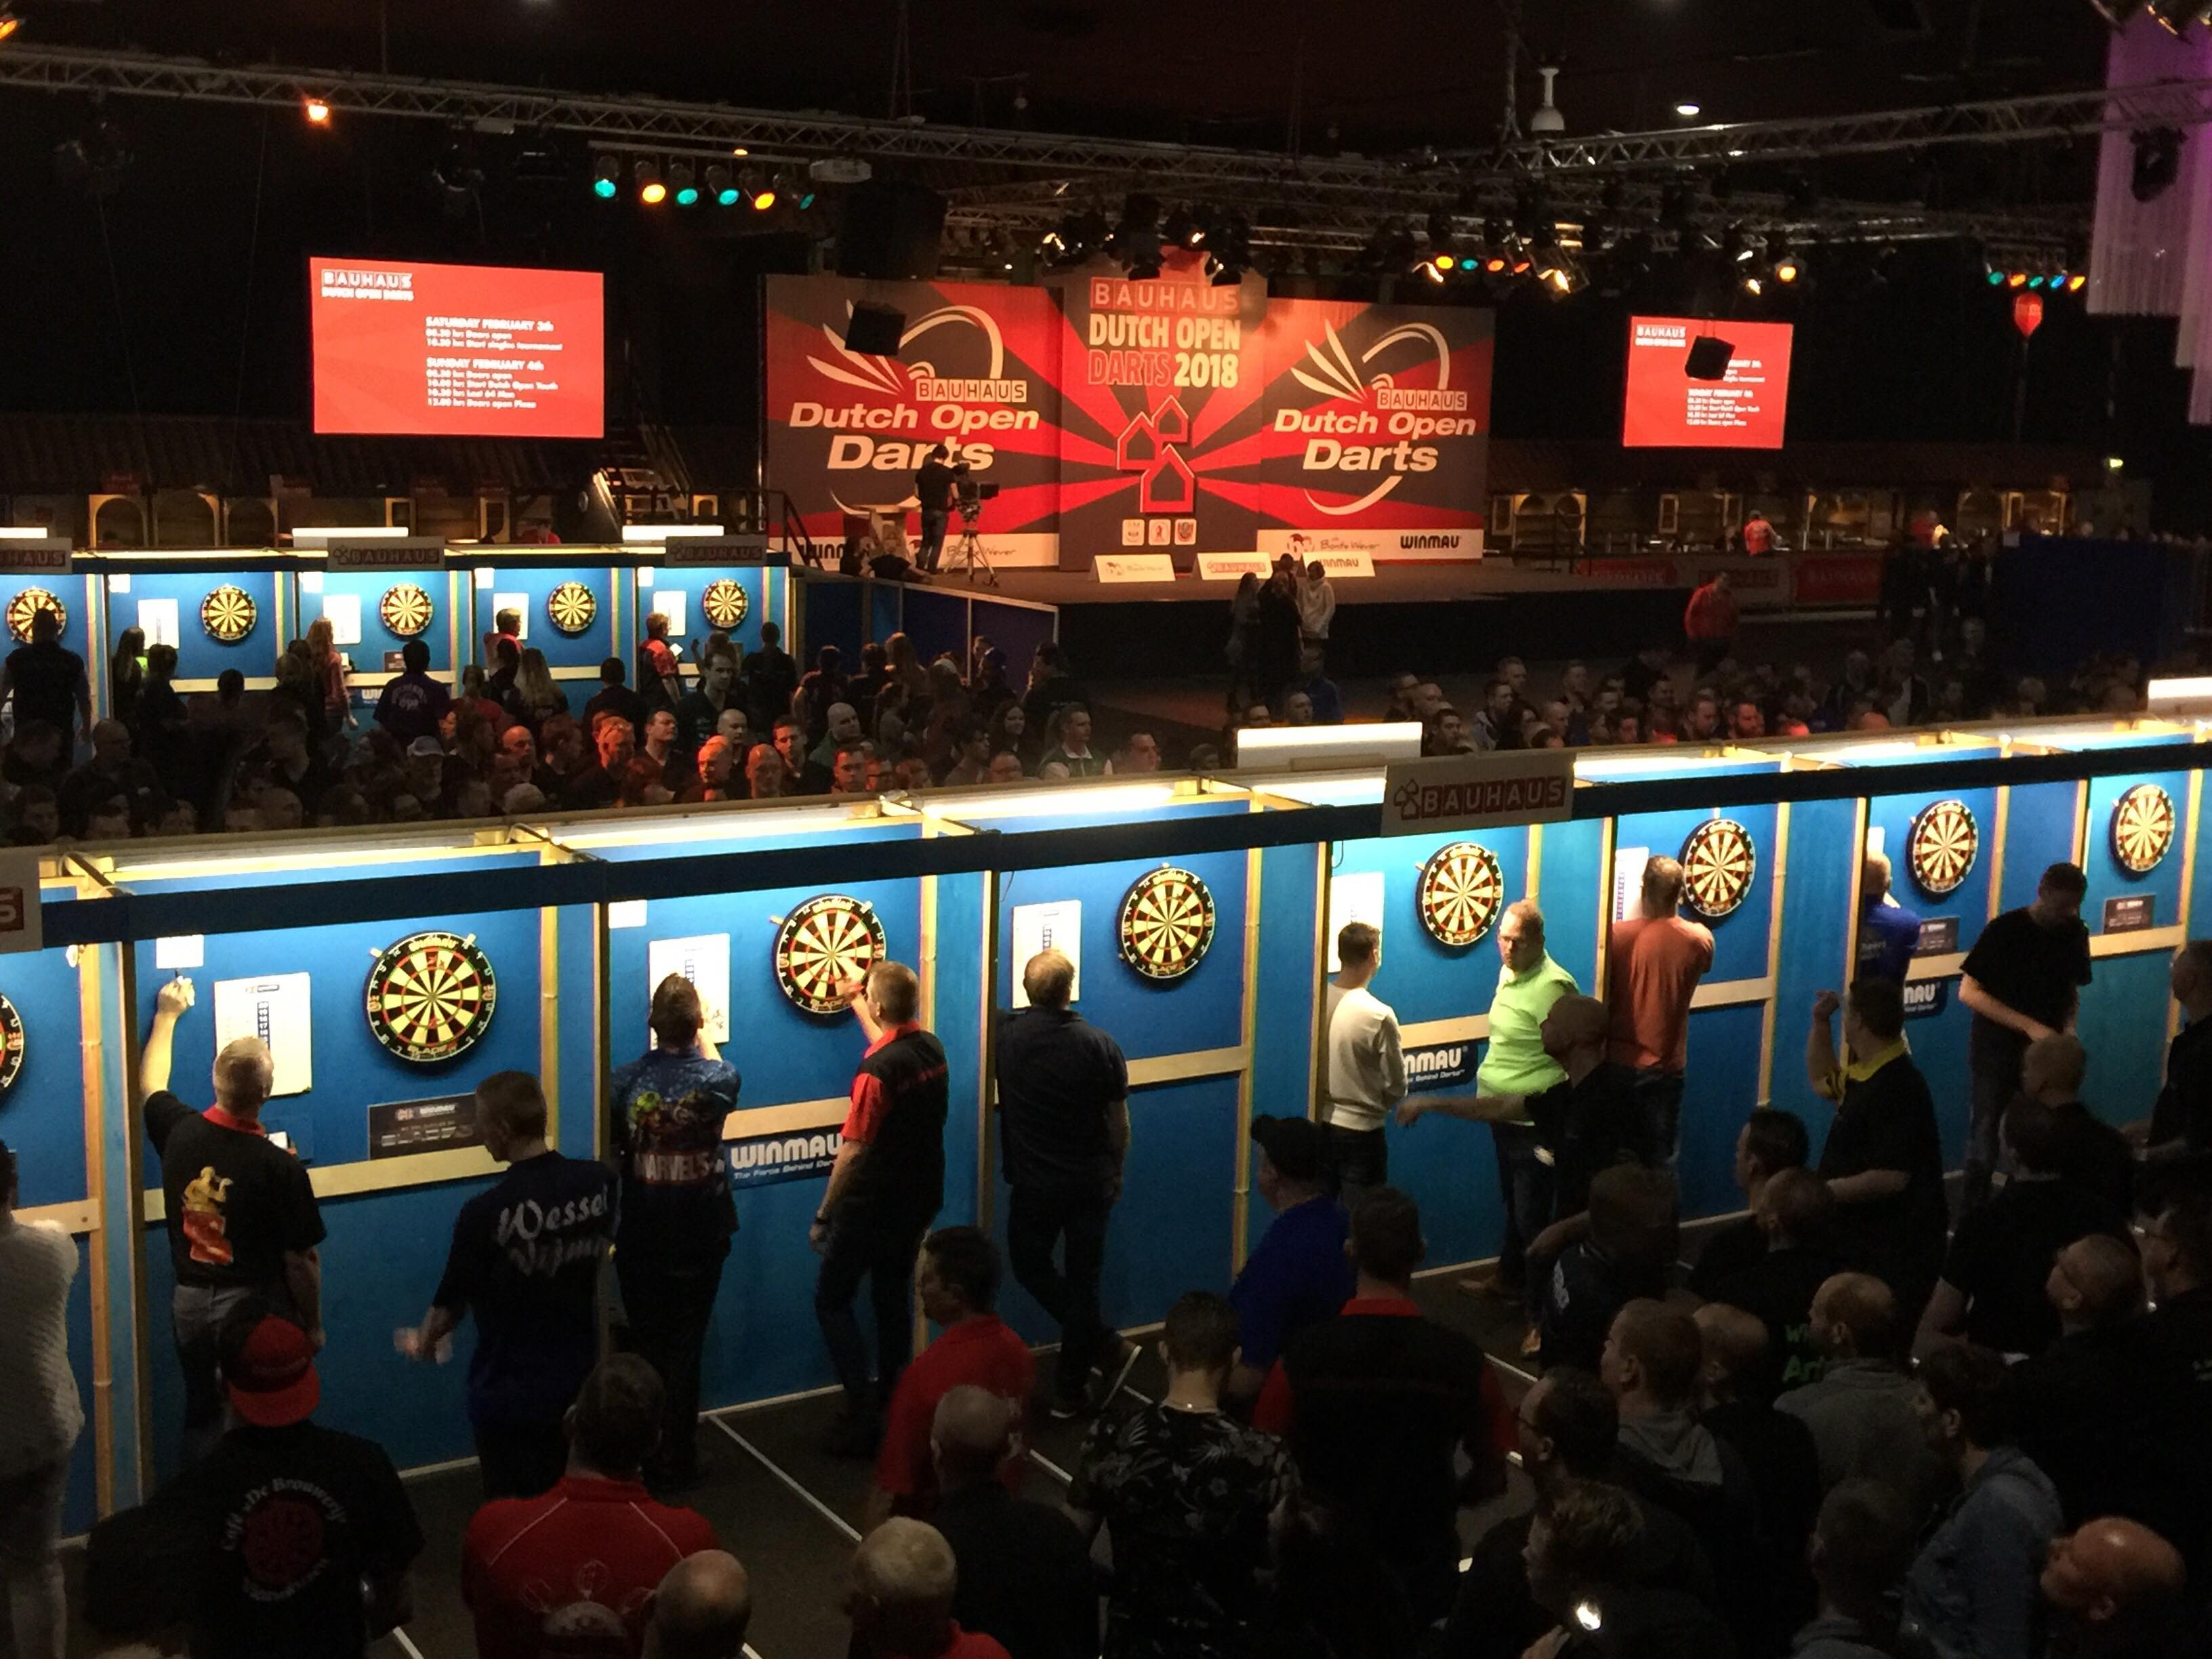 2018 Bauhaus Dutch Open Darts